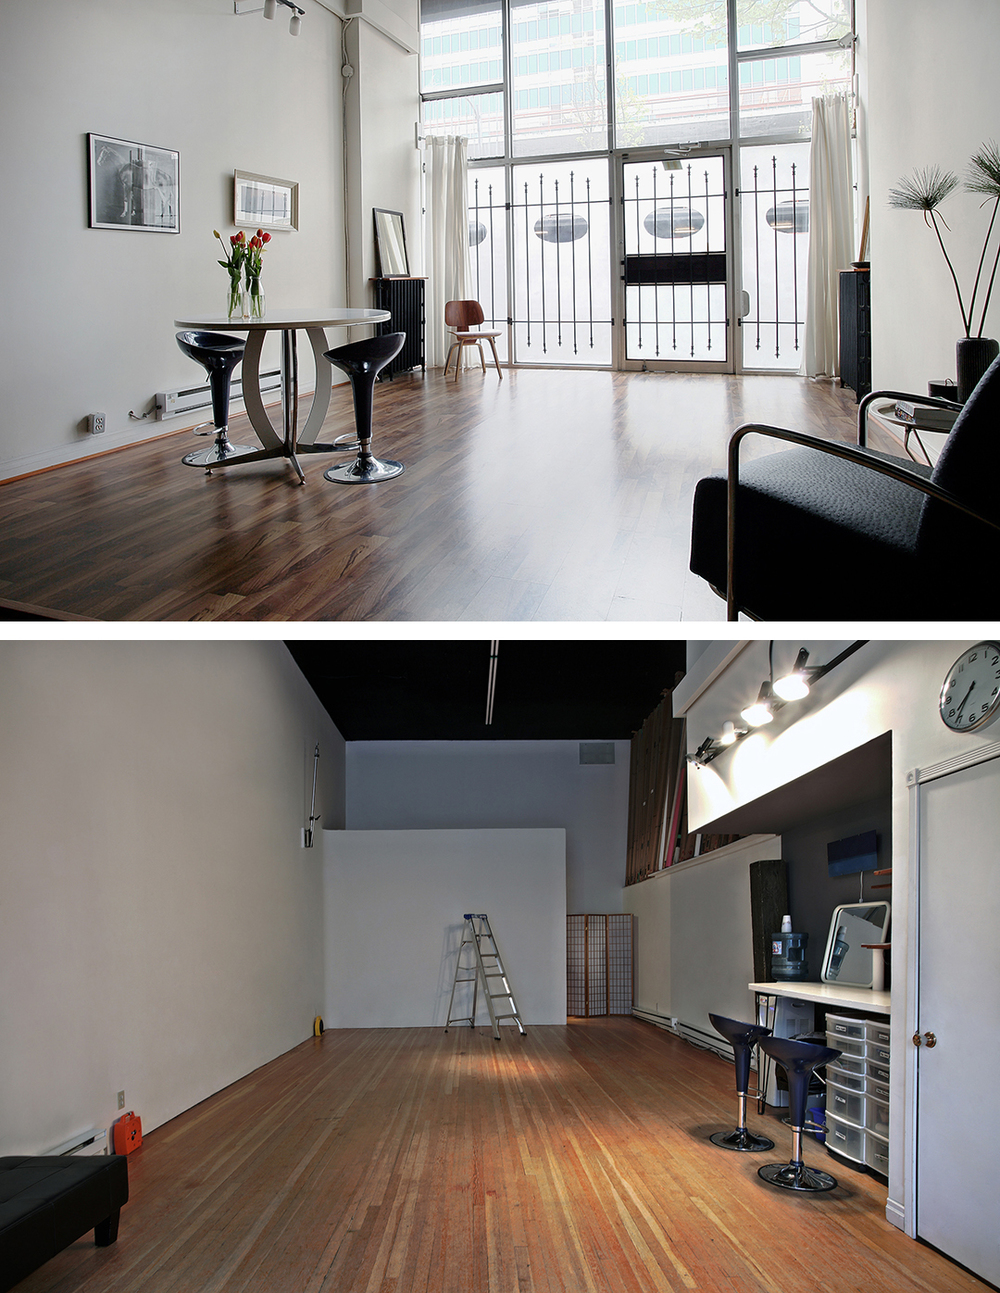 Top: Studio Lobby / Art Gallery | Bottom: Studio Space (800-950 sq. ft.)